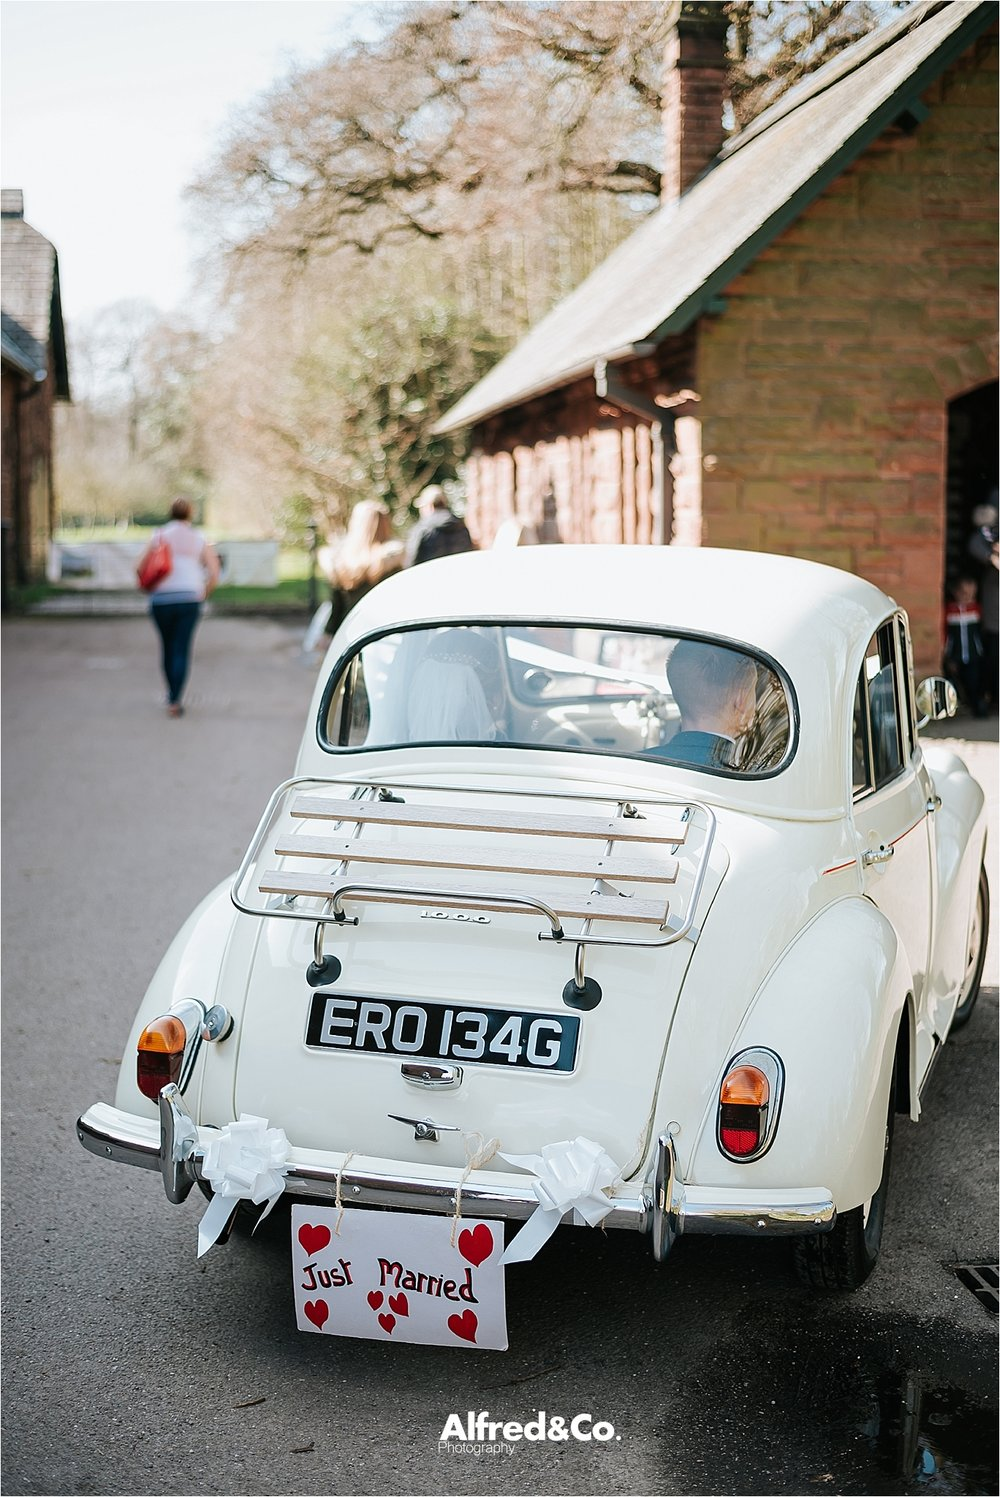 just married vintage wedding beetle